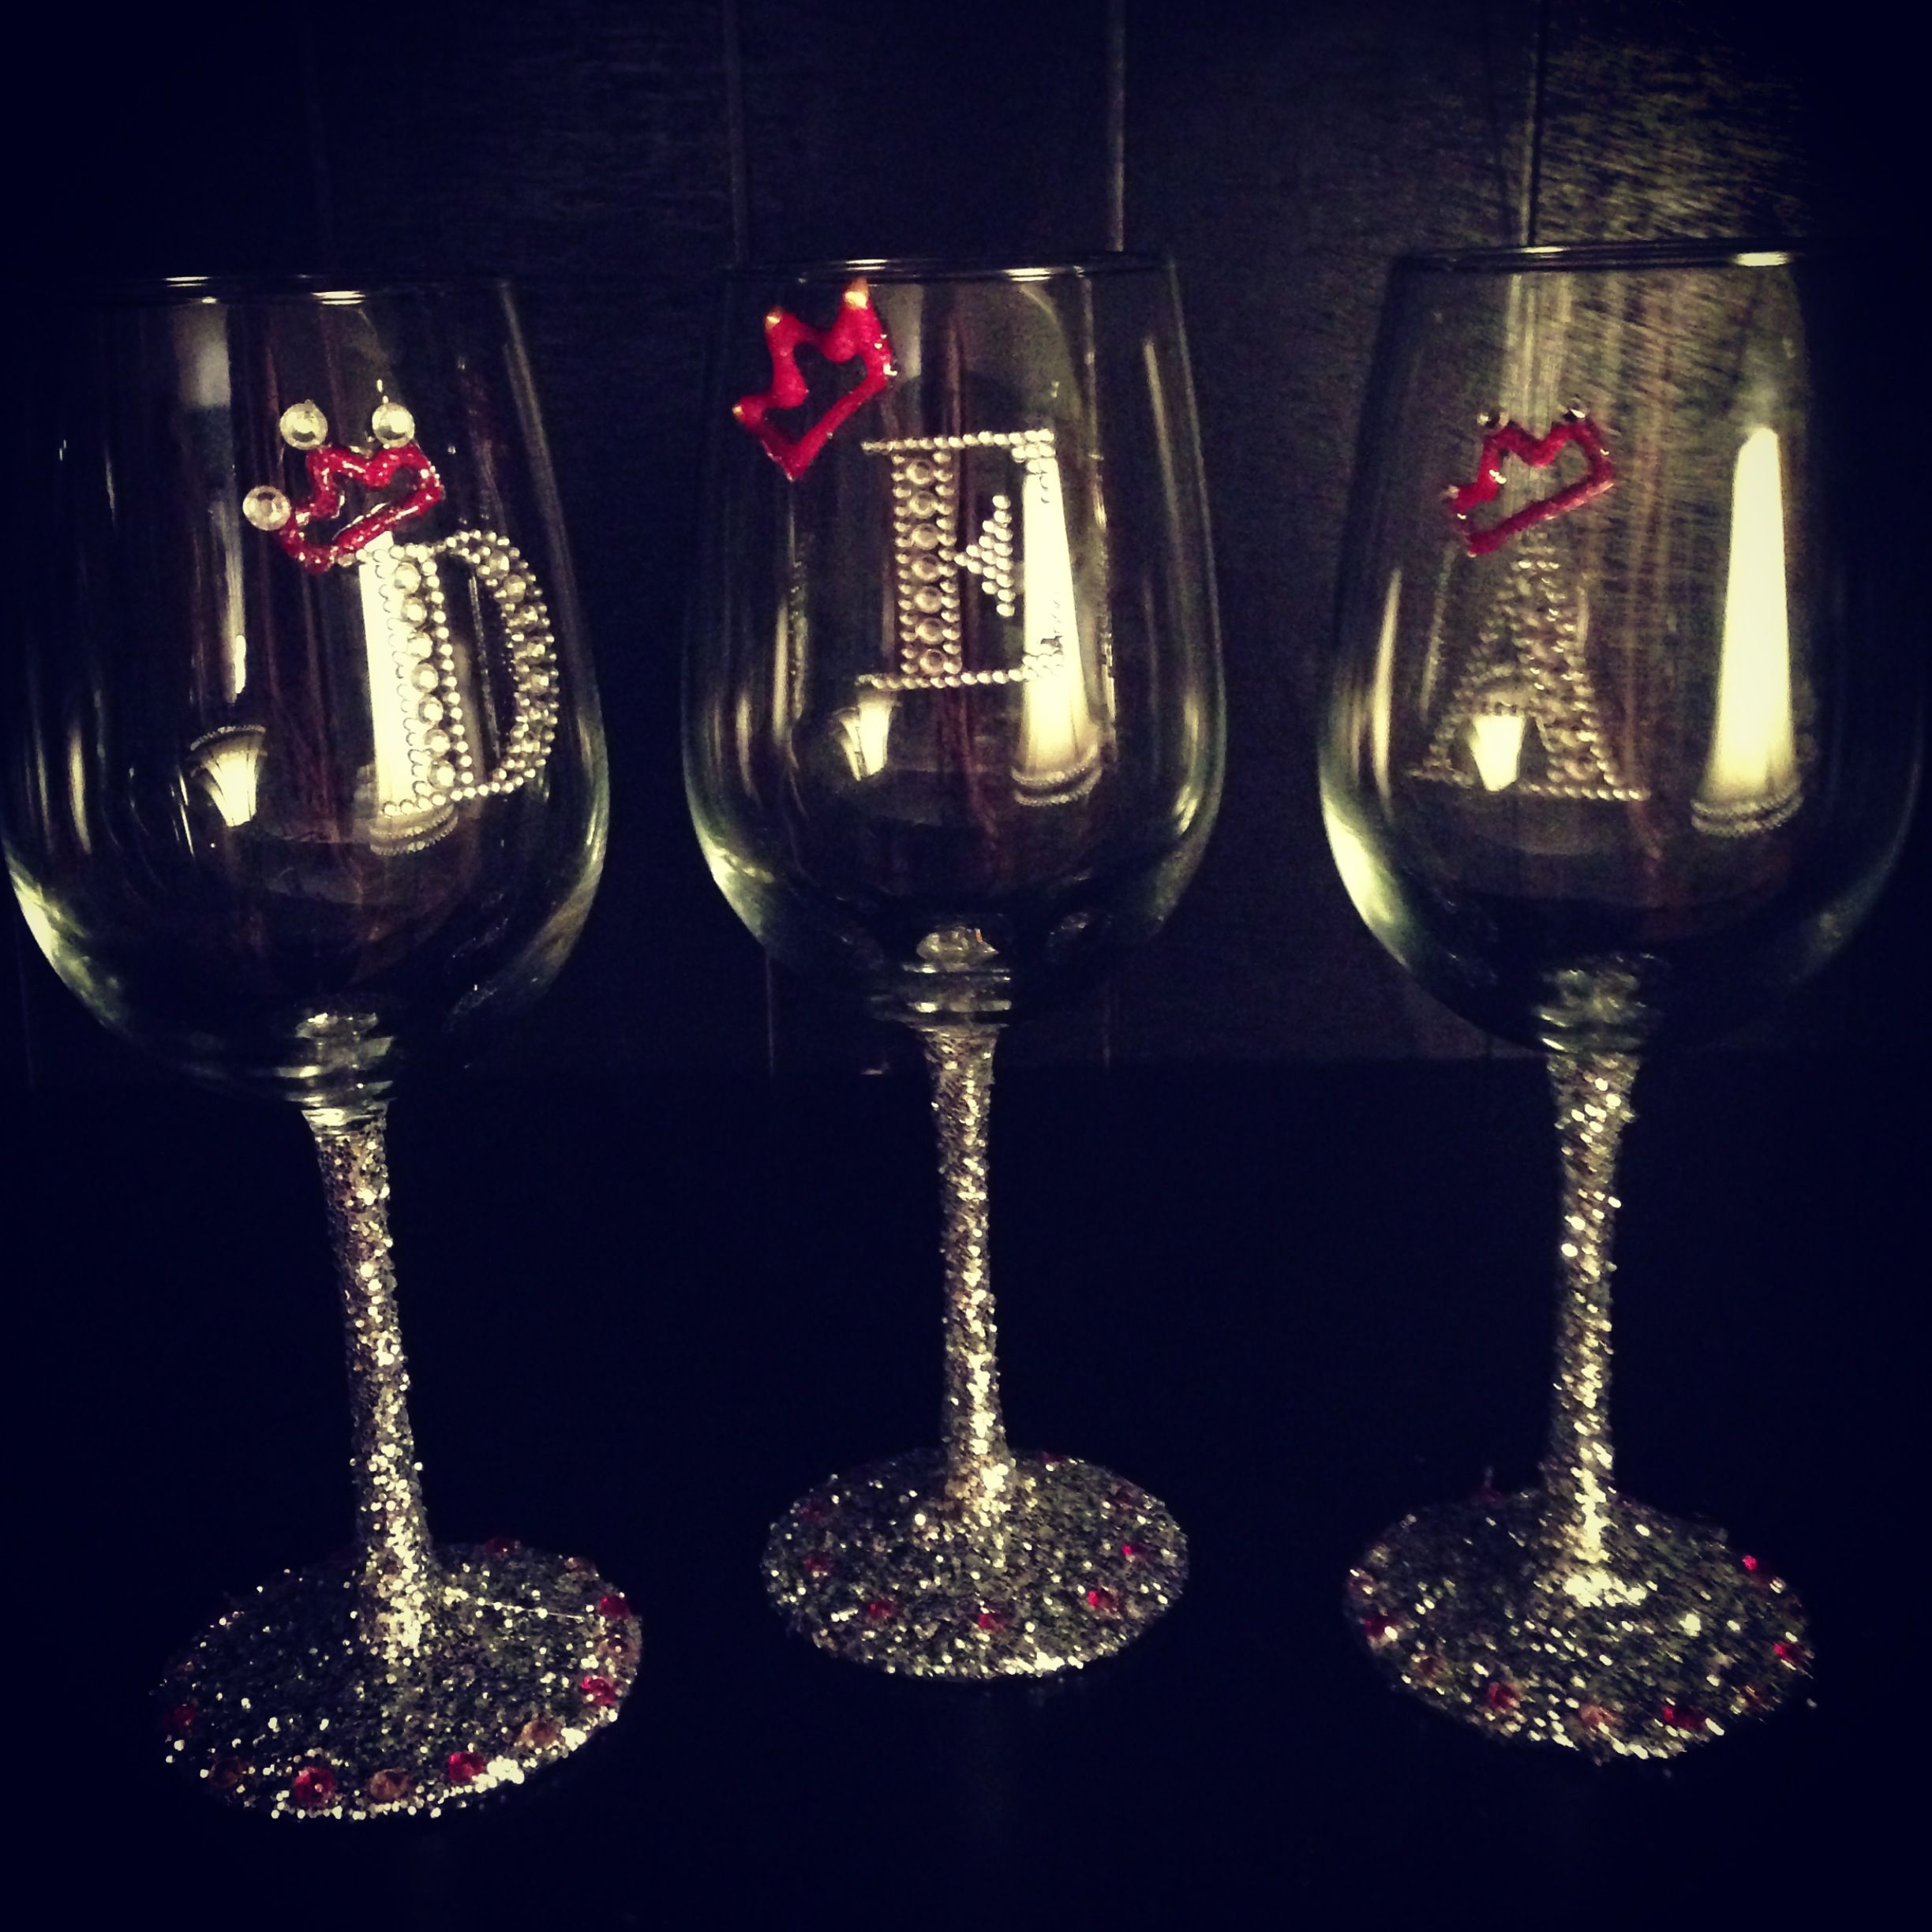 decorated wine glasses with glitter and rhinestones :)We just painted Elmer's glue on the base and stem with a paintbrush, then dipped them in glitter. The letters were pre-made stick ons, and the crowns are puffy paint!